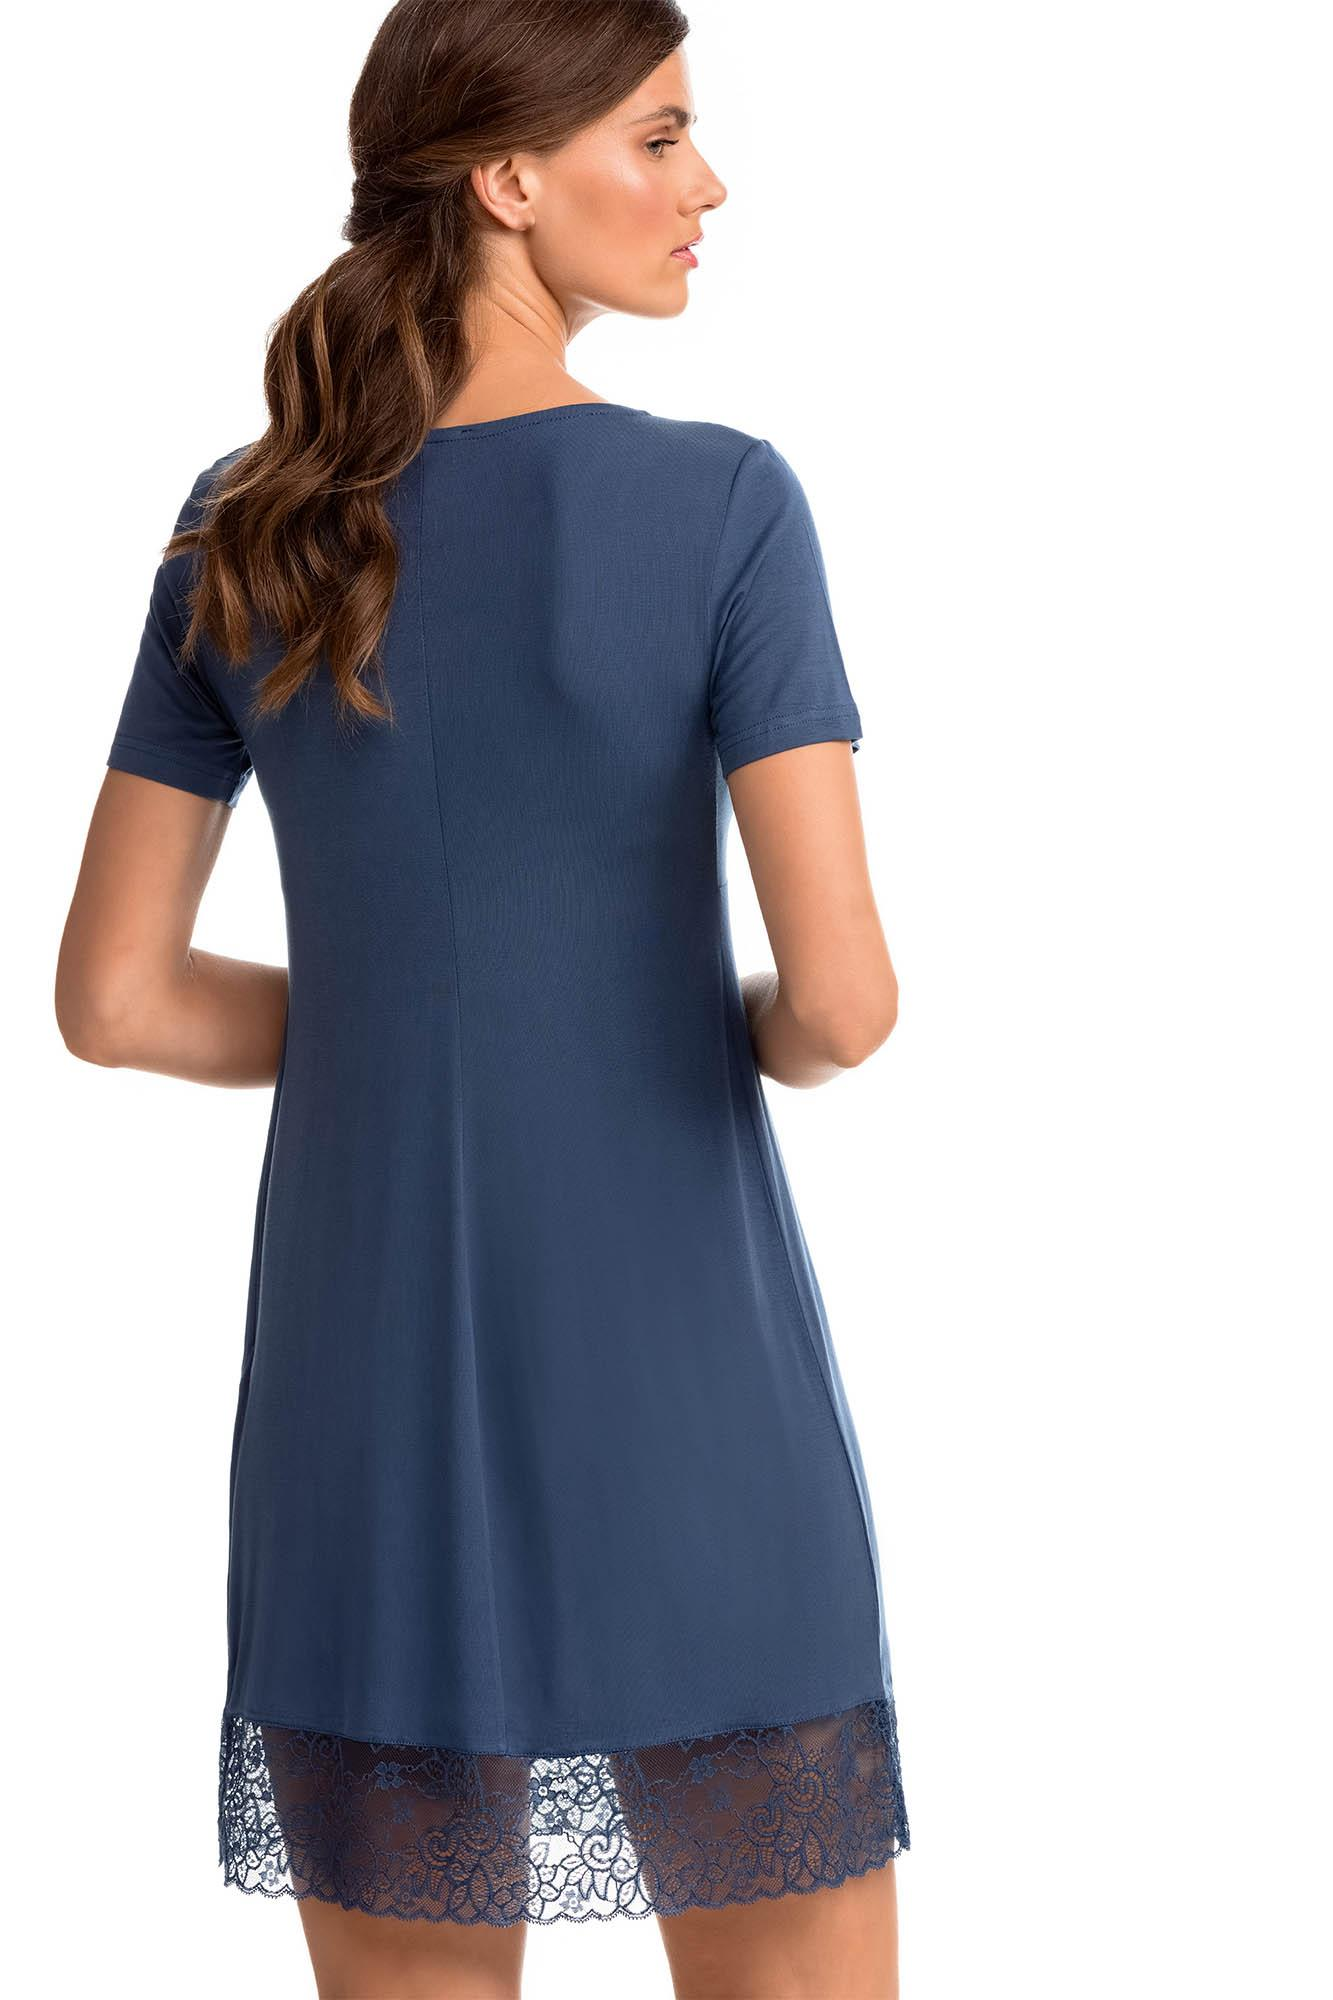 Nursing Nightgown with Lace Details